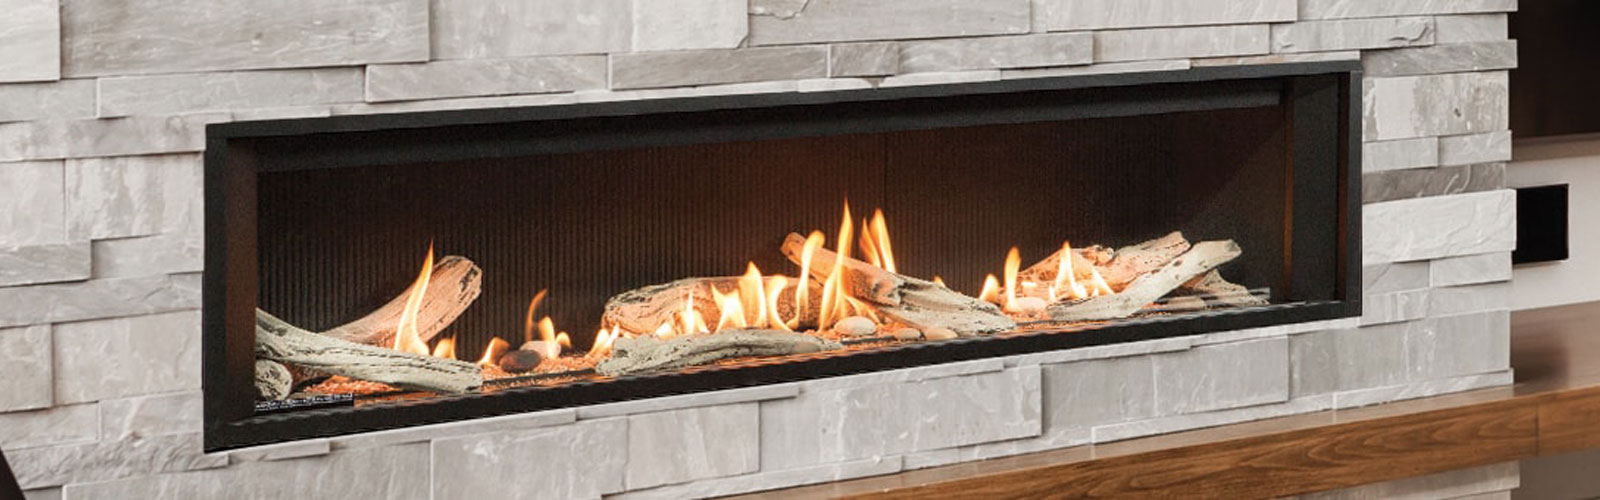 Gas Fireplace Cleaning & Repair